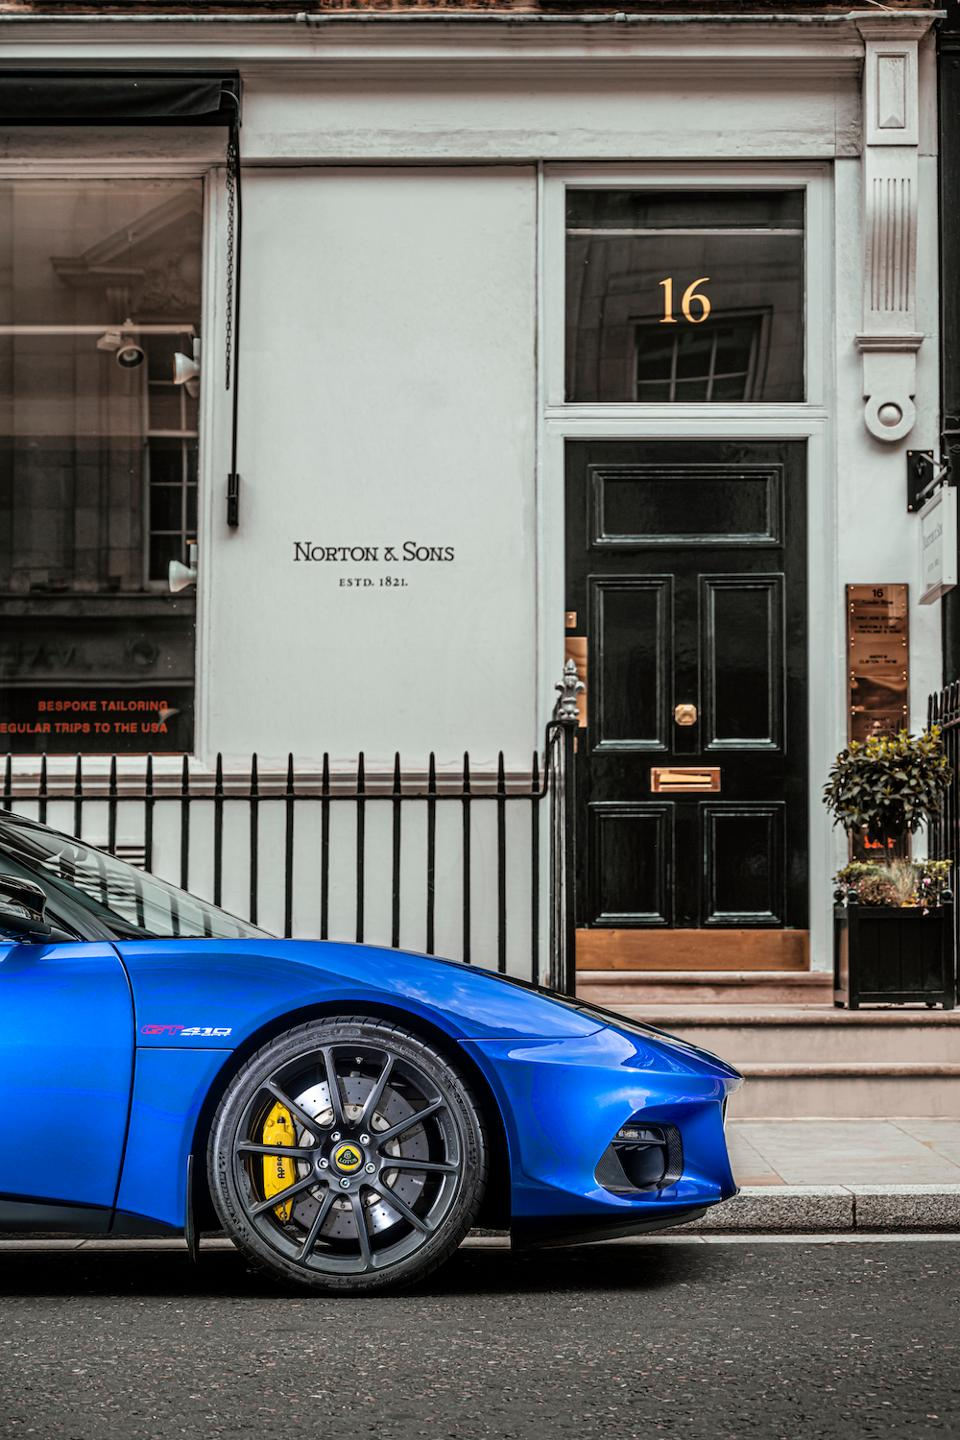 Lotus Cars and Norton & Sons will make a clothing line together